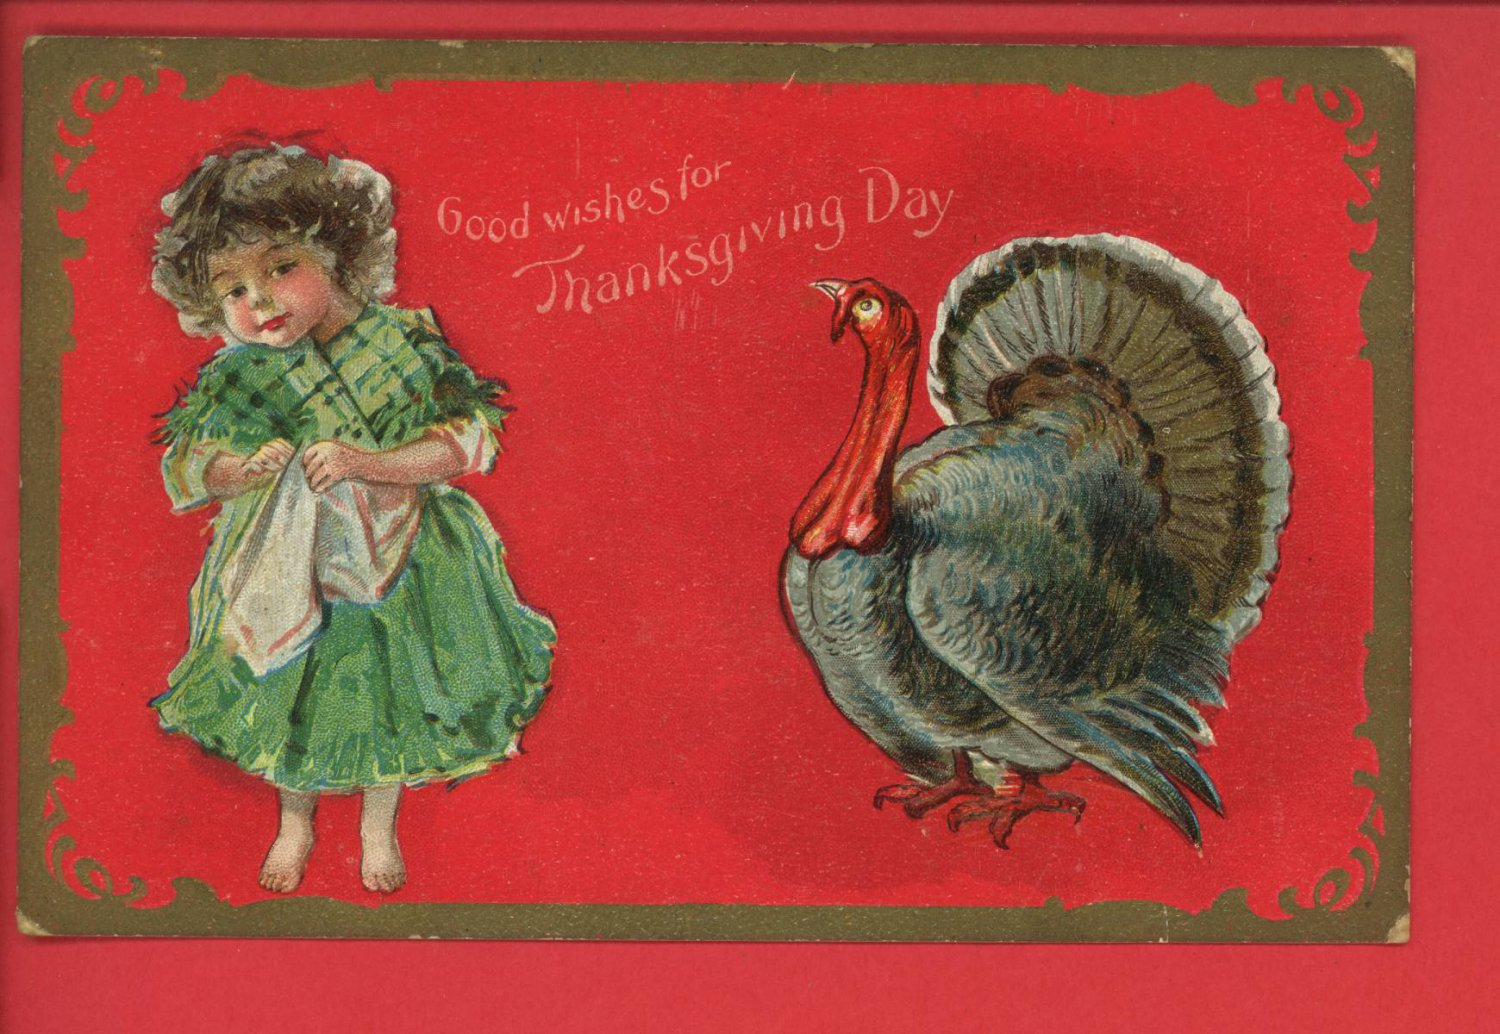 THANKSGIVING DAY WISHES GIRL AND TURKEY 1911 POSTCARD